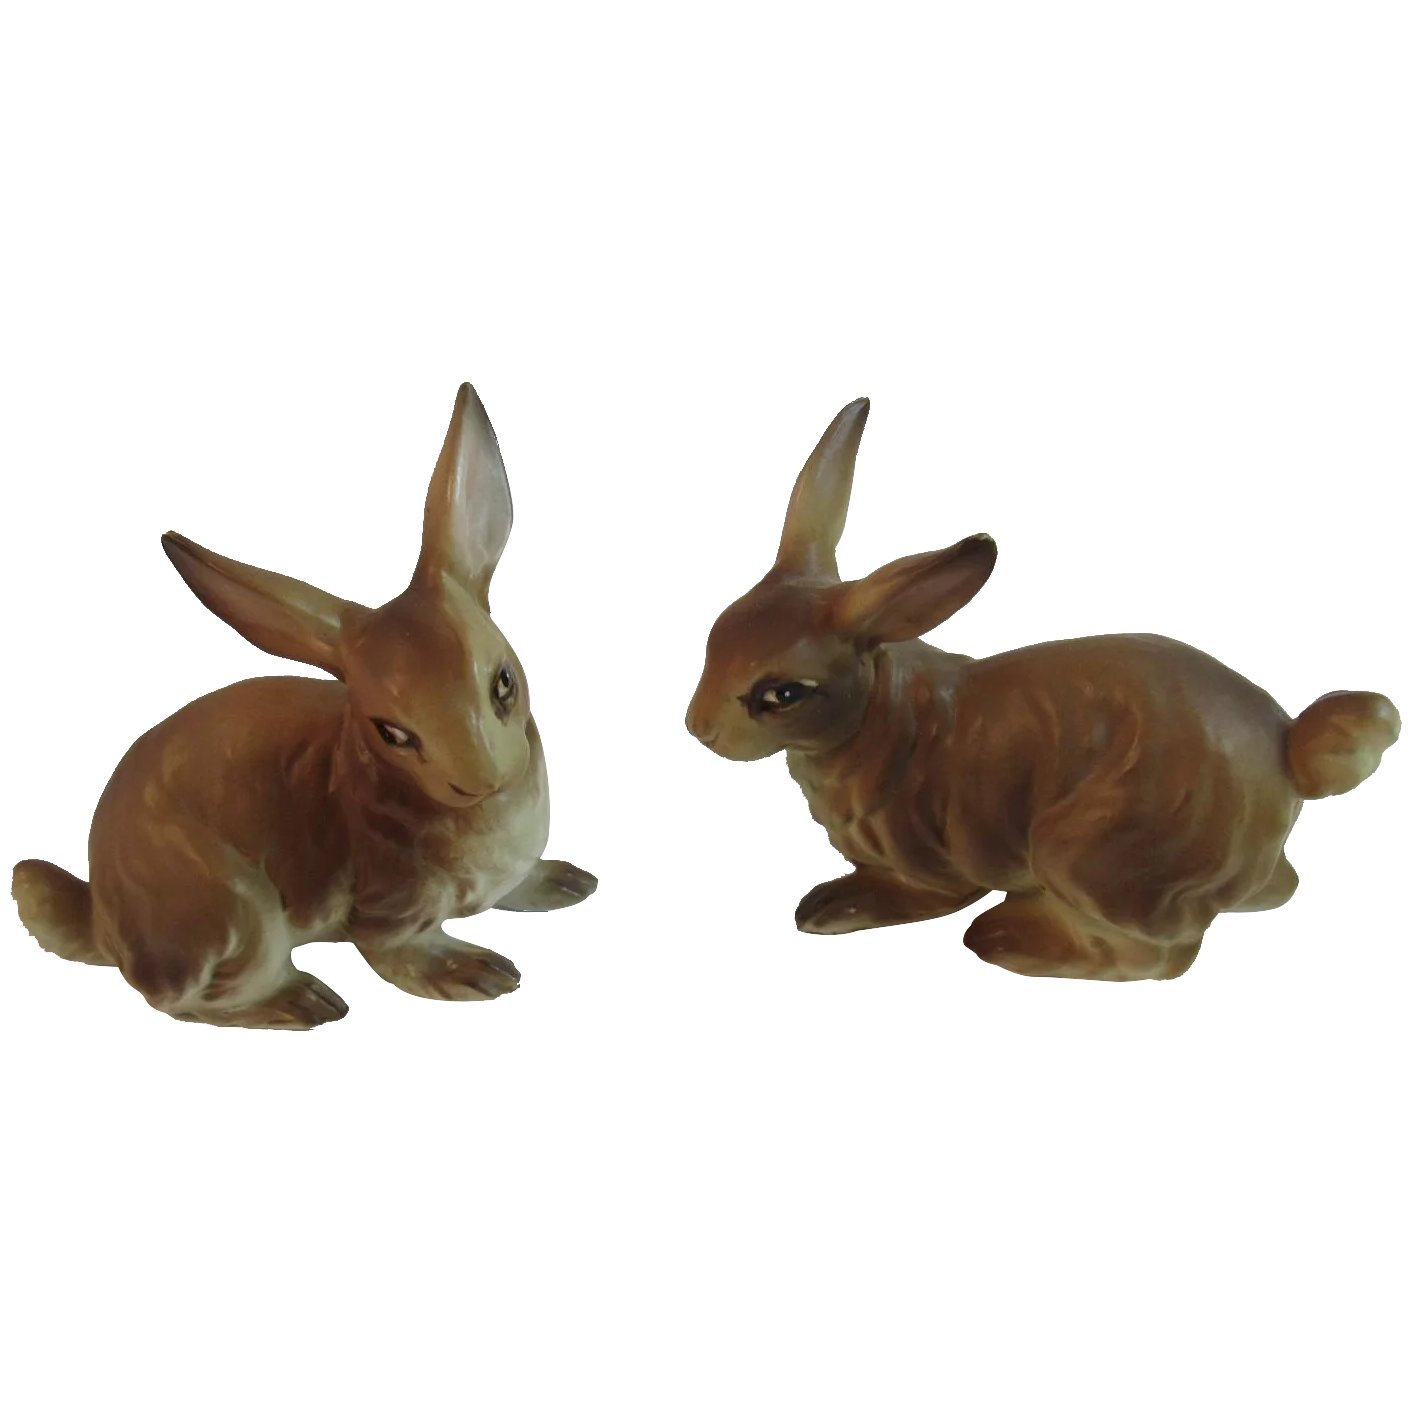 2 Ucagco Brown Bunny Rabbits Bunnies Japan Ceramics Vintage Easter Ss Moore Antiques Ruby Lane